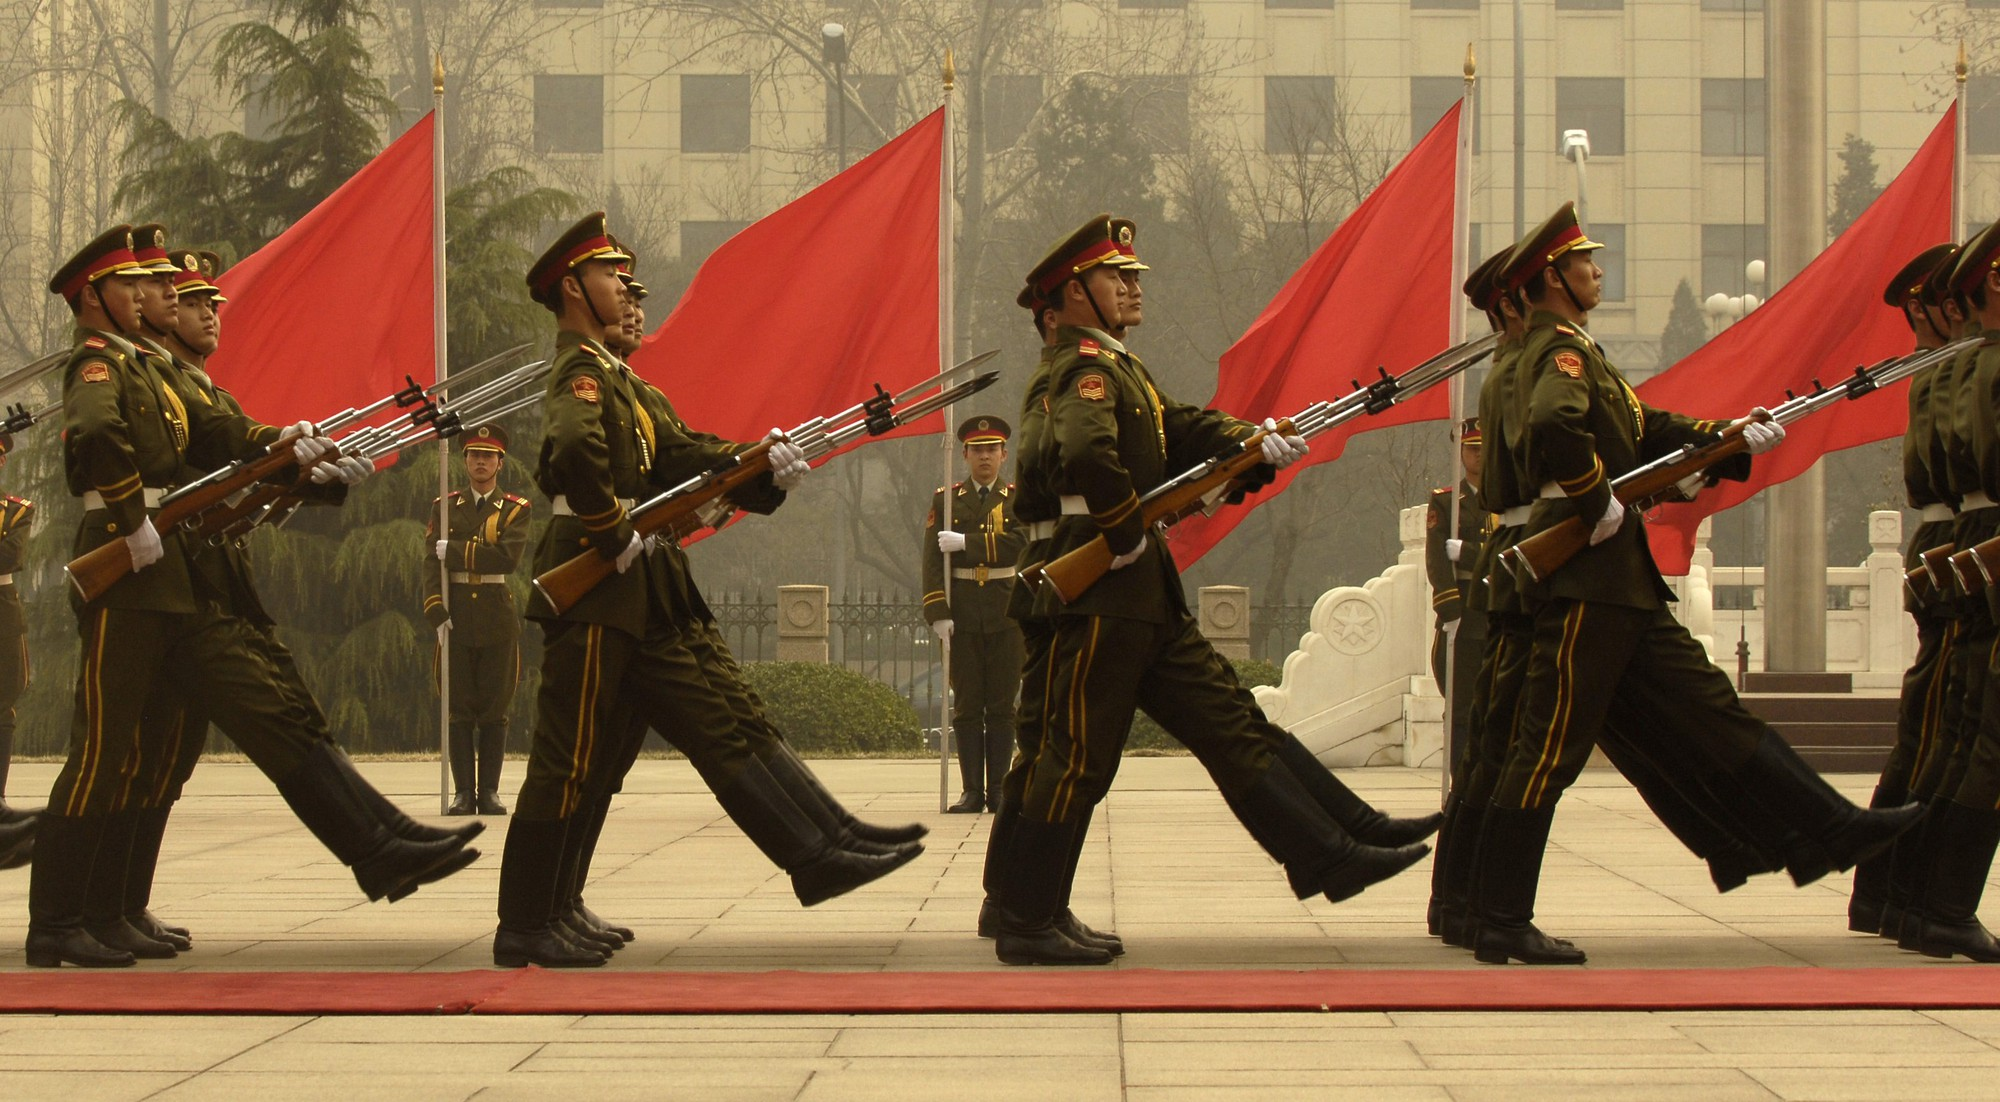 Chinese_honor_guard_in_column_070322-F-0193C-014